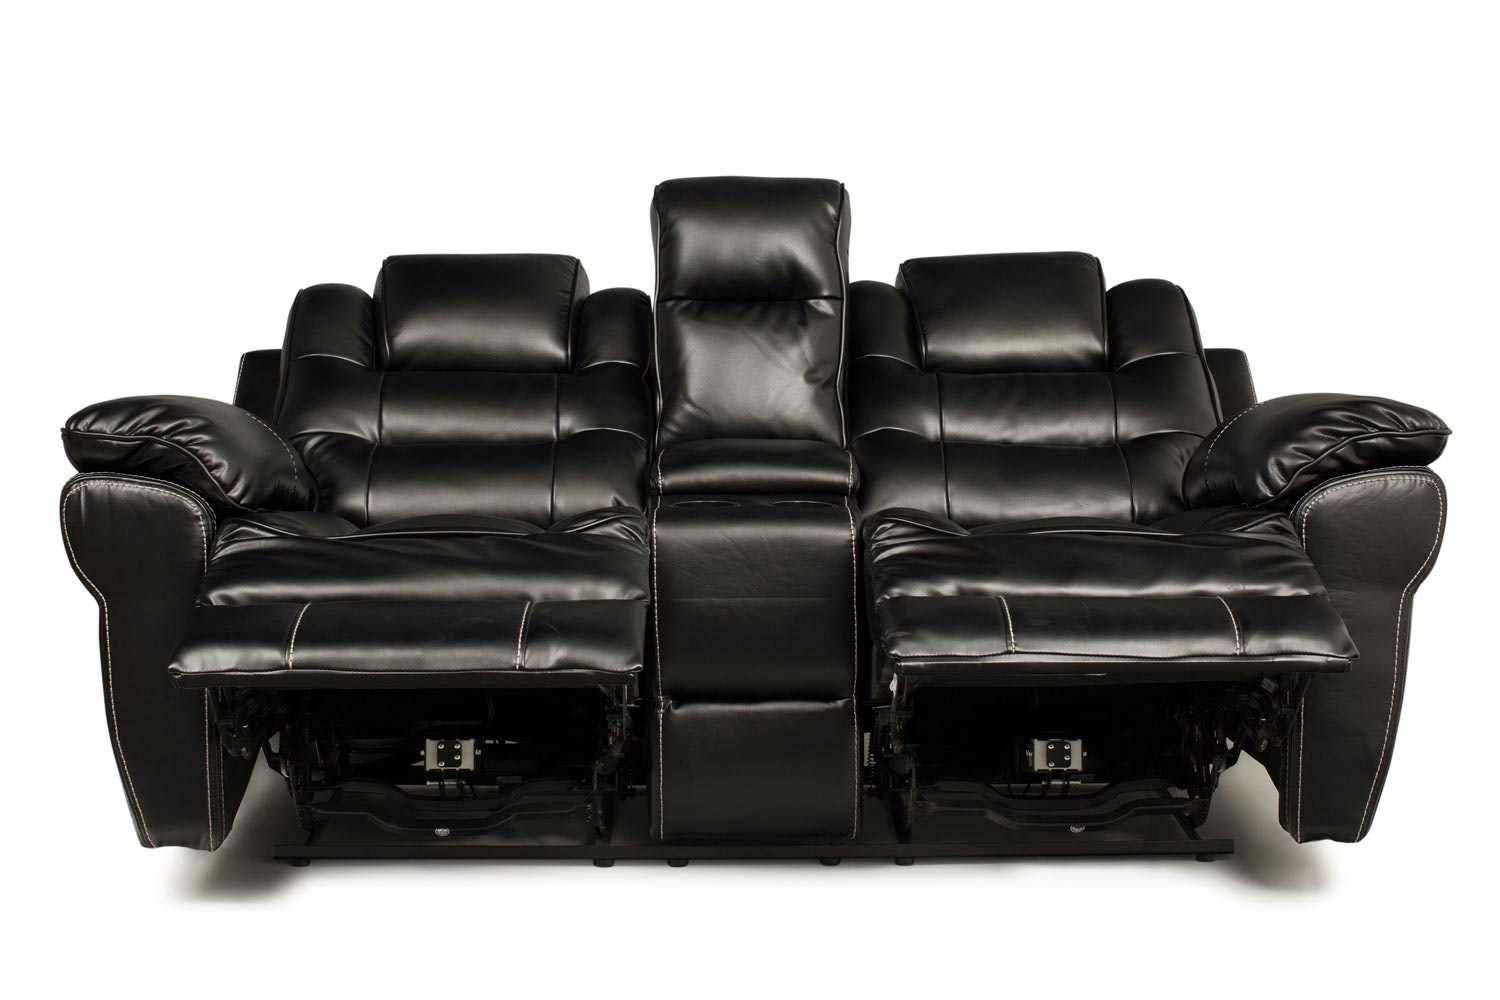 Baxter 2 Seater Electric Recliner with Console | Black